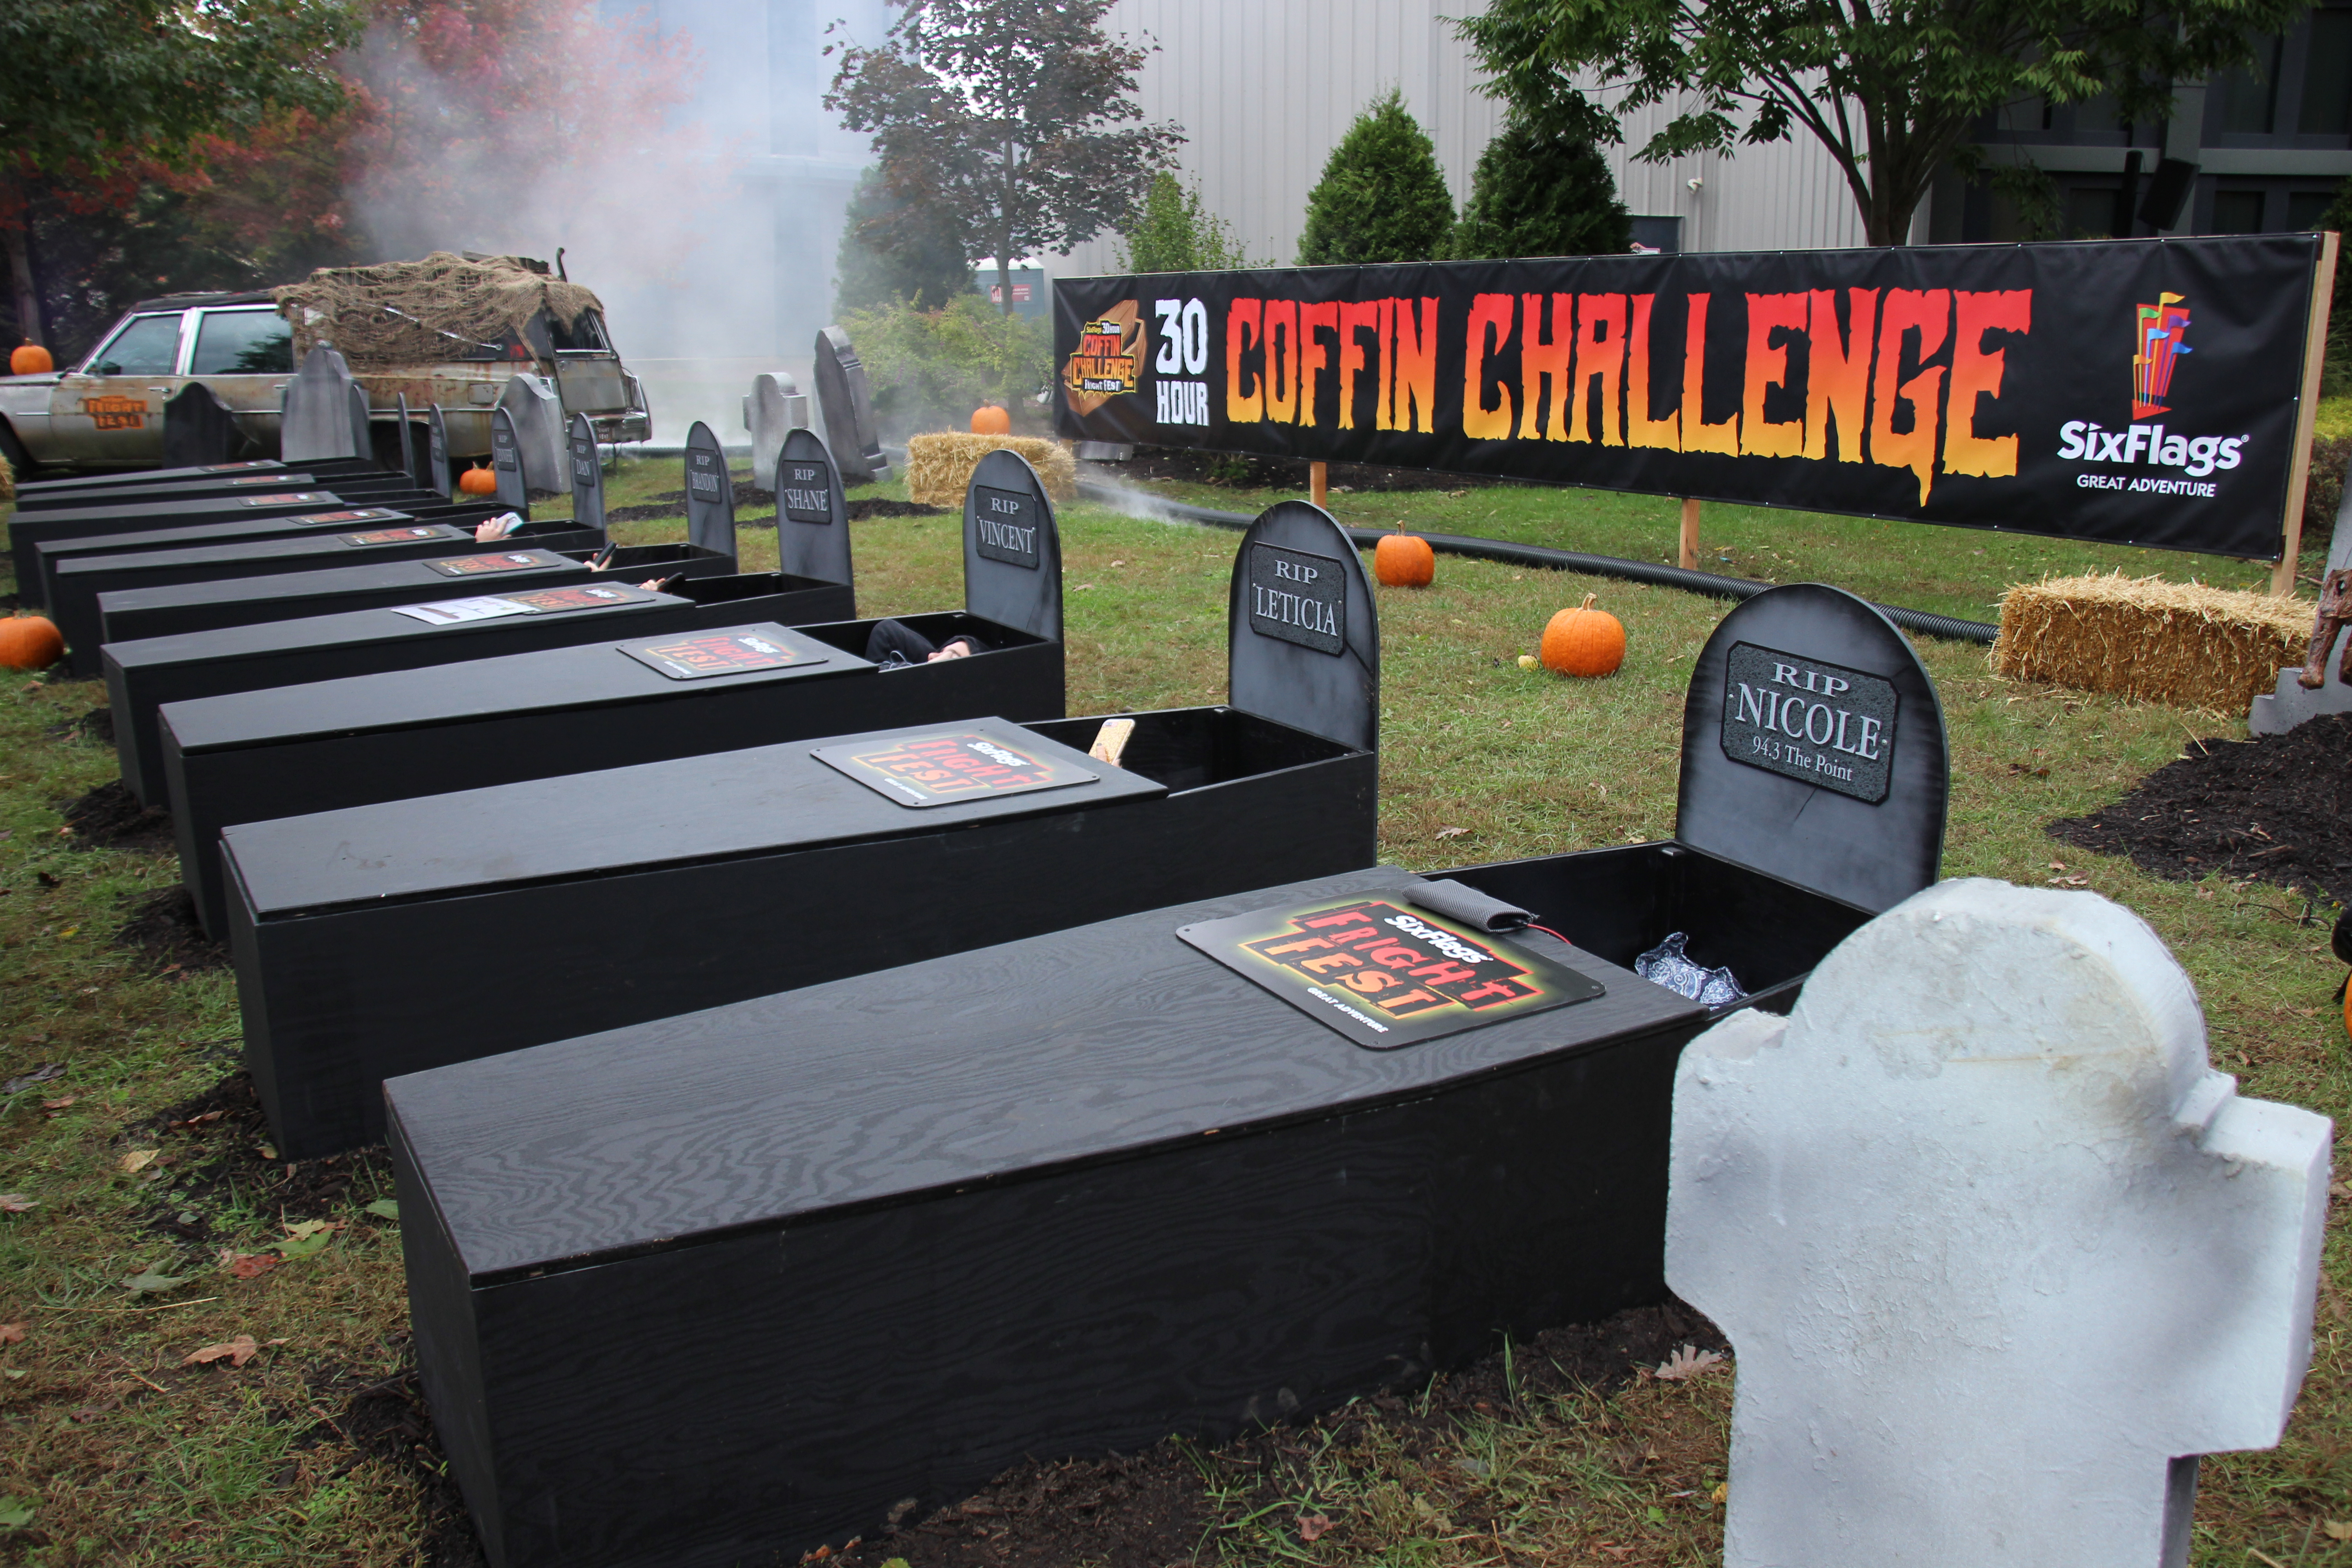 I'll do my 'Coffin Challenge' when I'm actually dead, thanks (opinion)